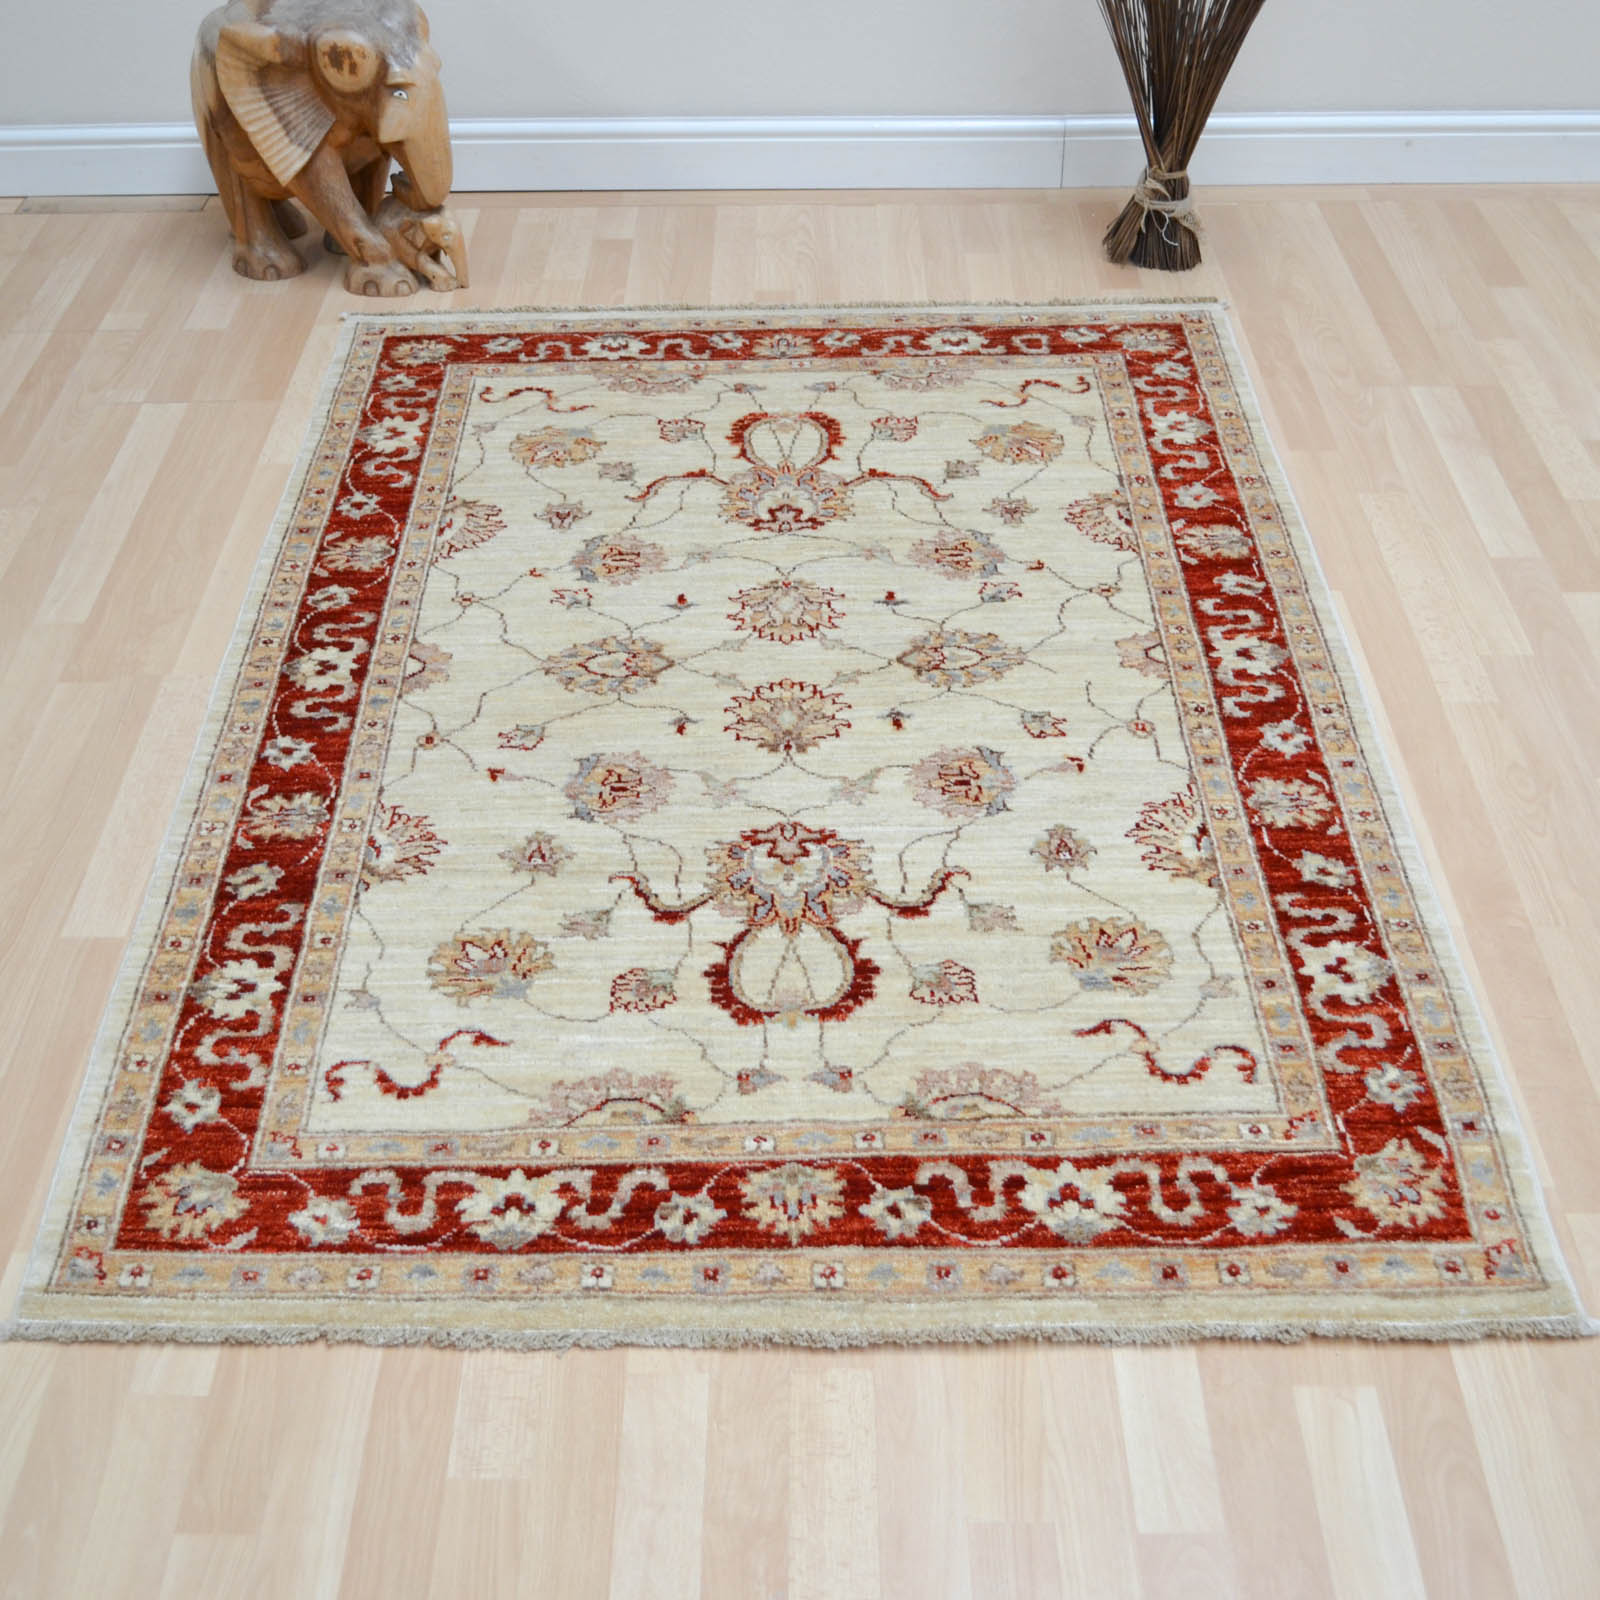 Hand Knotted Ziegler Wool Rugs in Cream Red